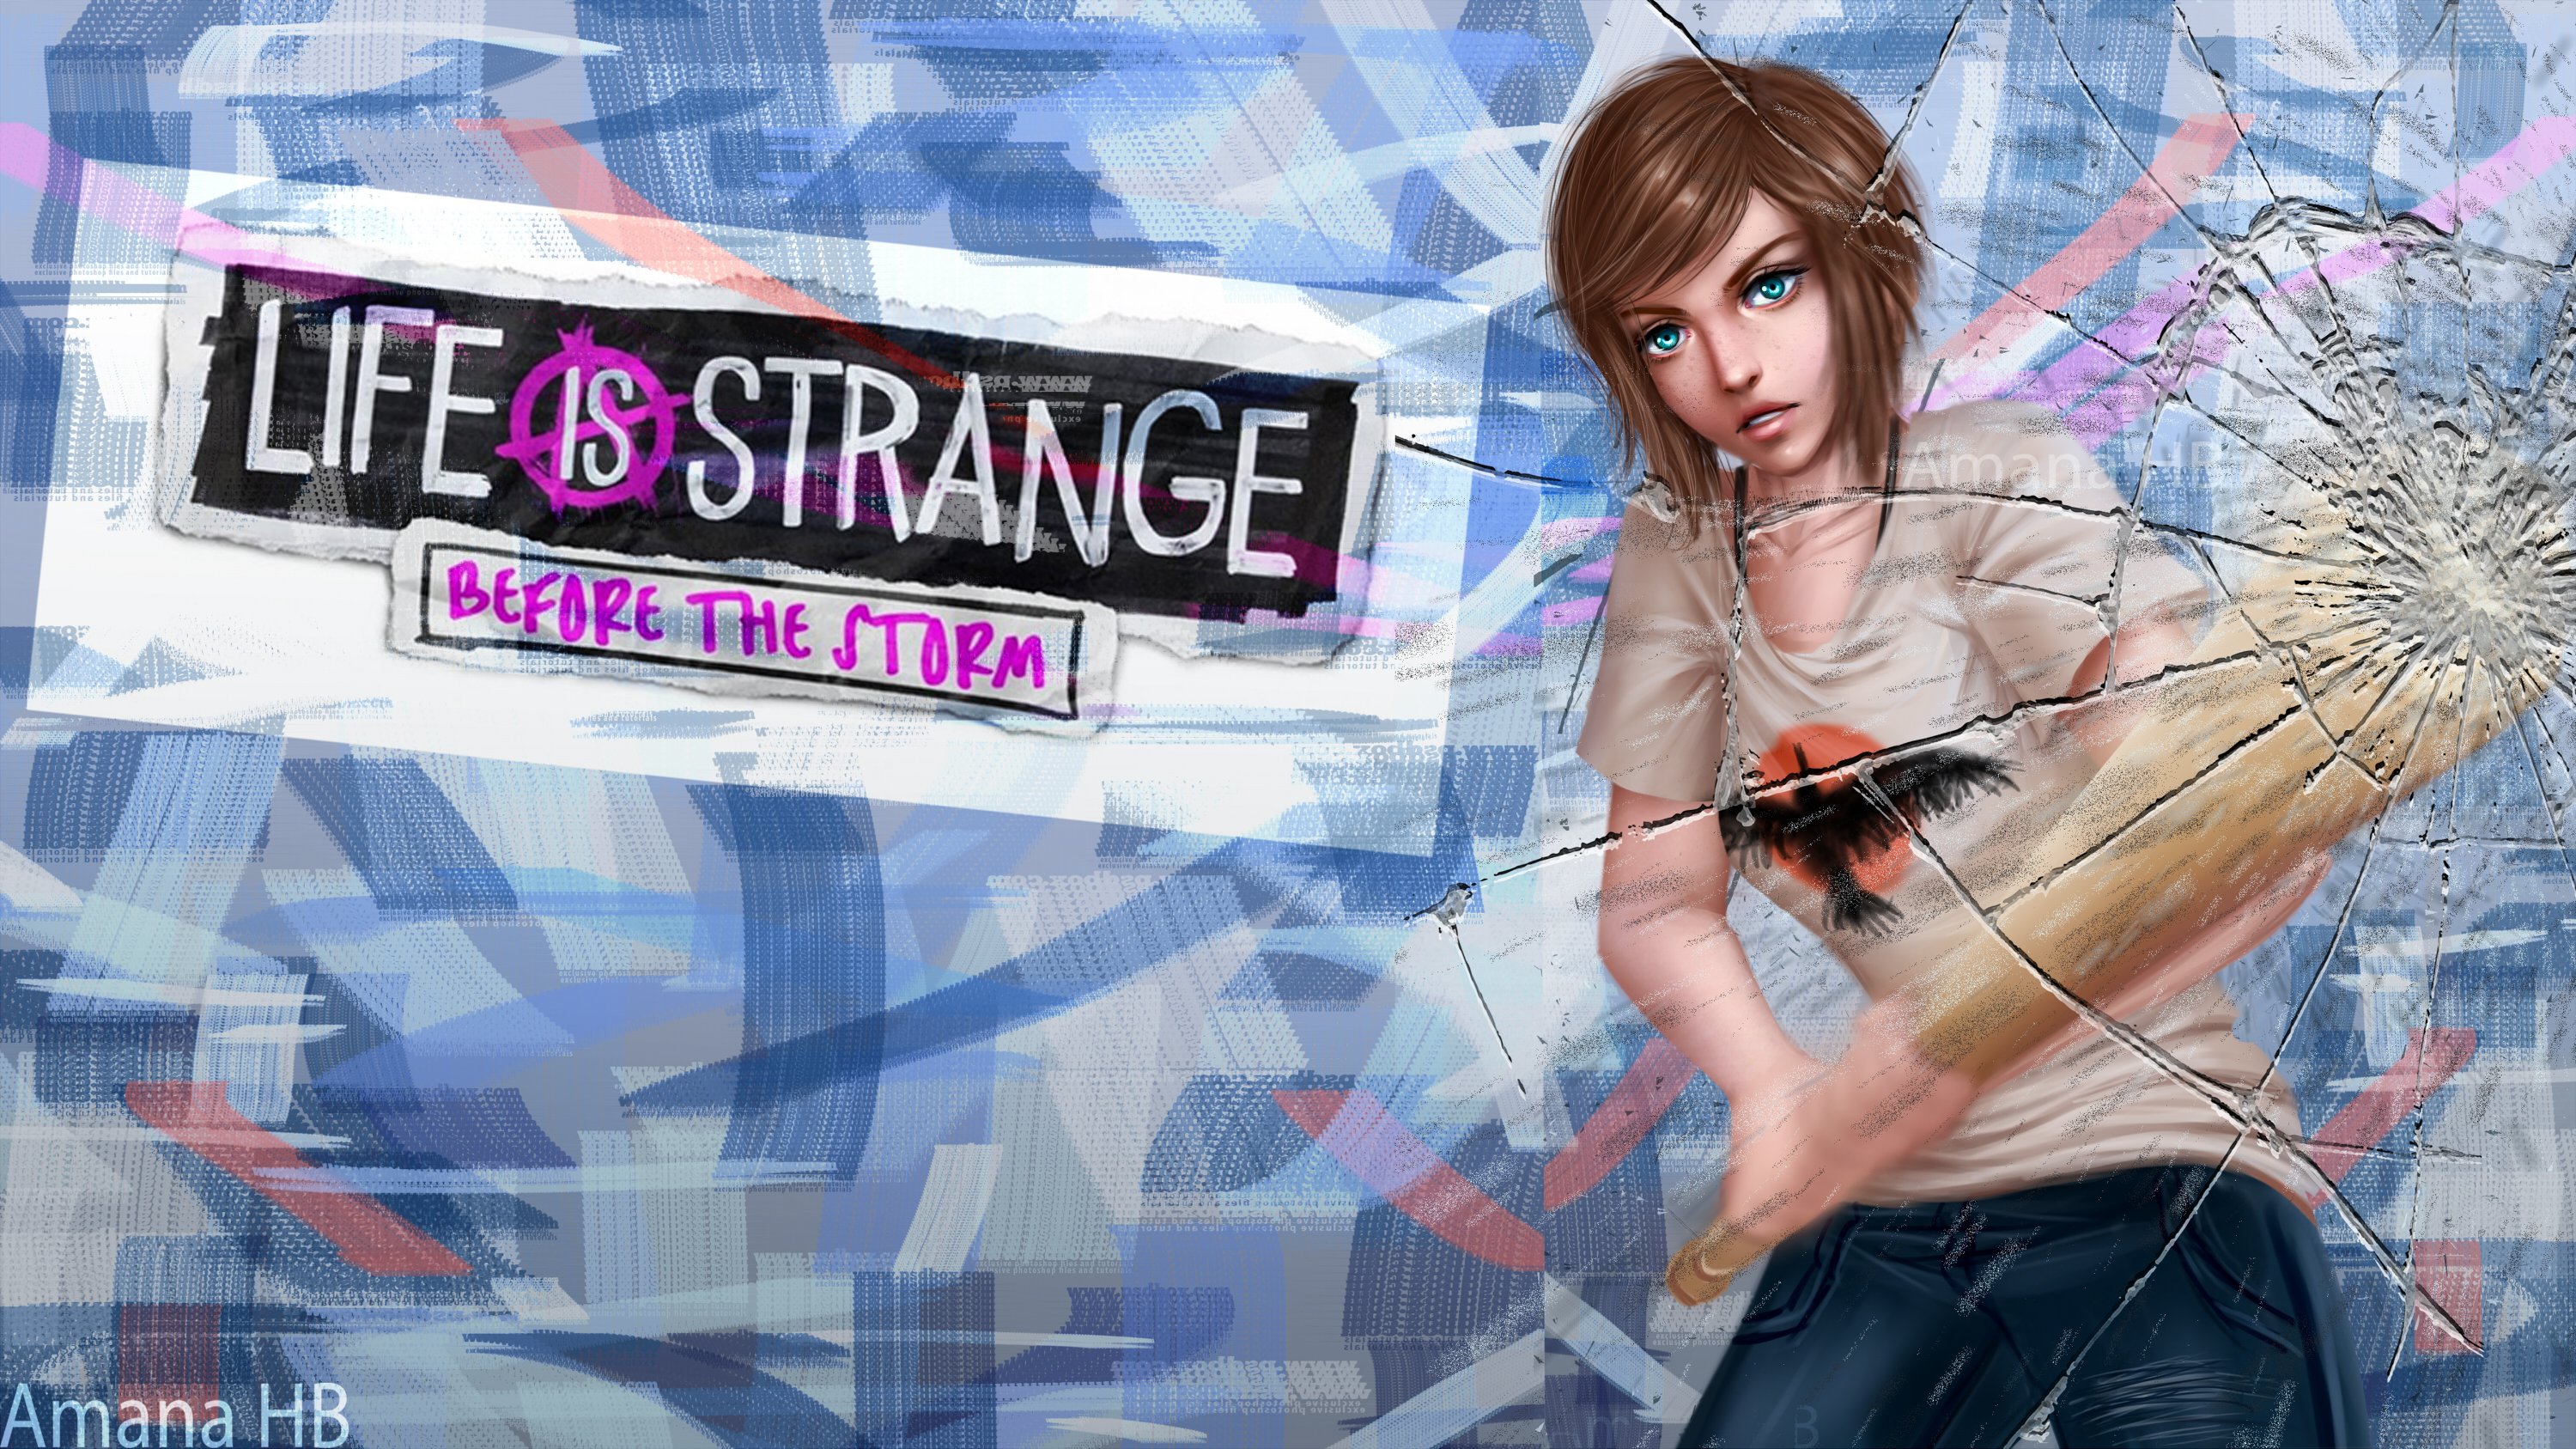 Life Is Strange Before The Storm Wallpaper: Life Is Strange Before The Storm Wallpaper HD Wallpaper